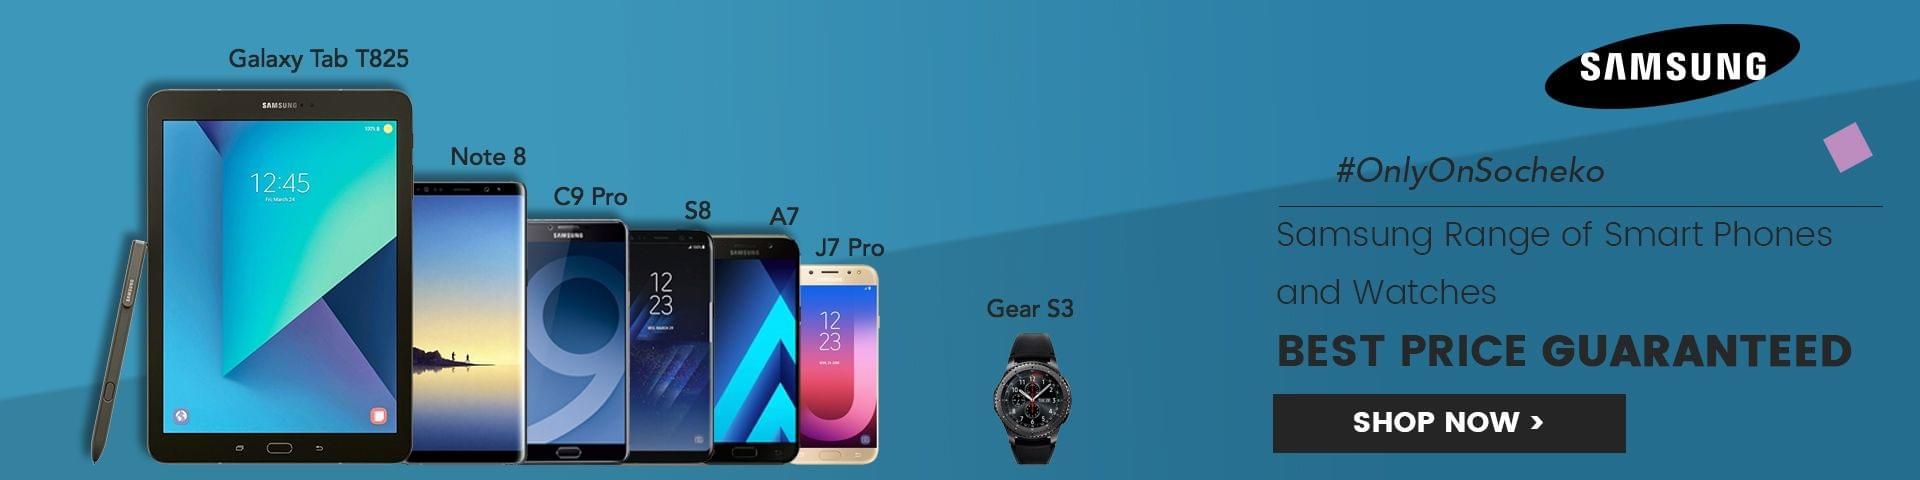 Buy Samsung Smart Phones and Watches